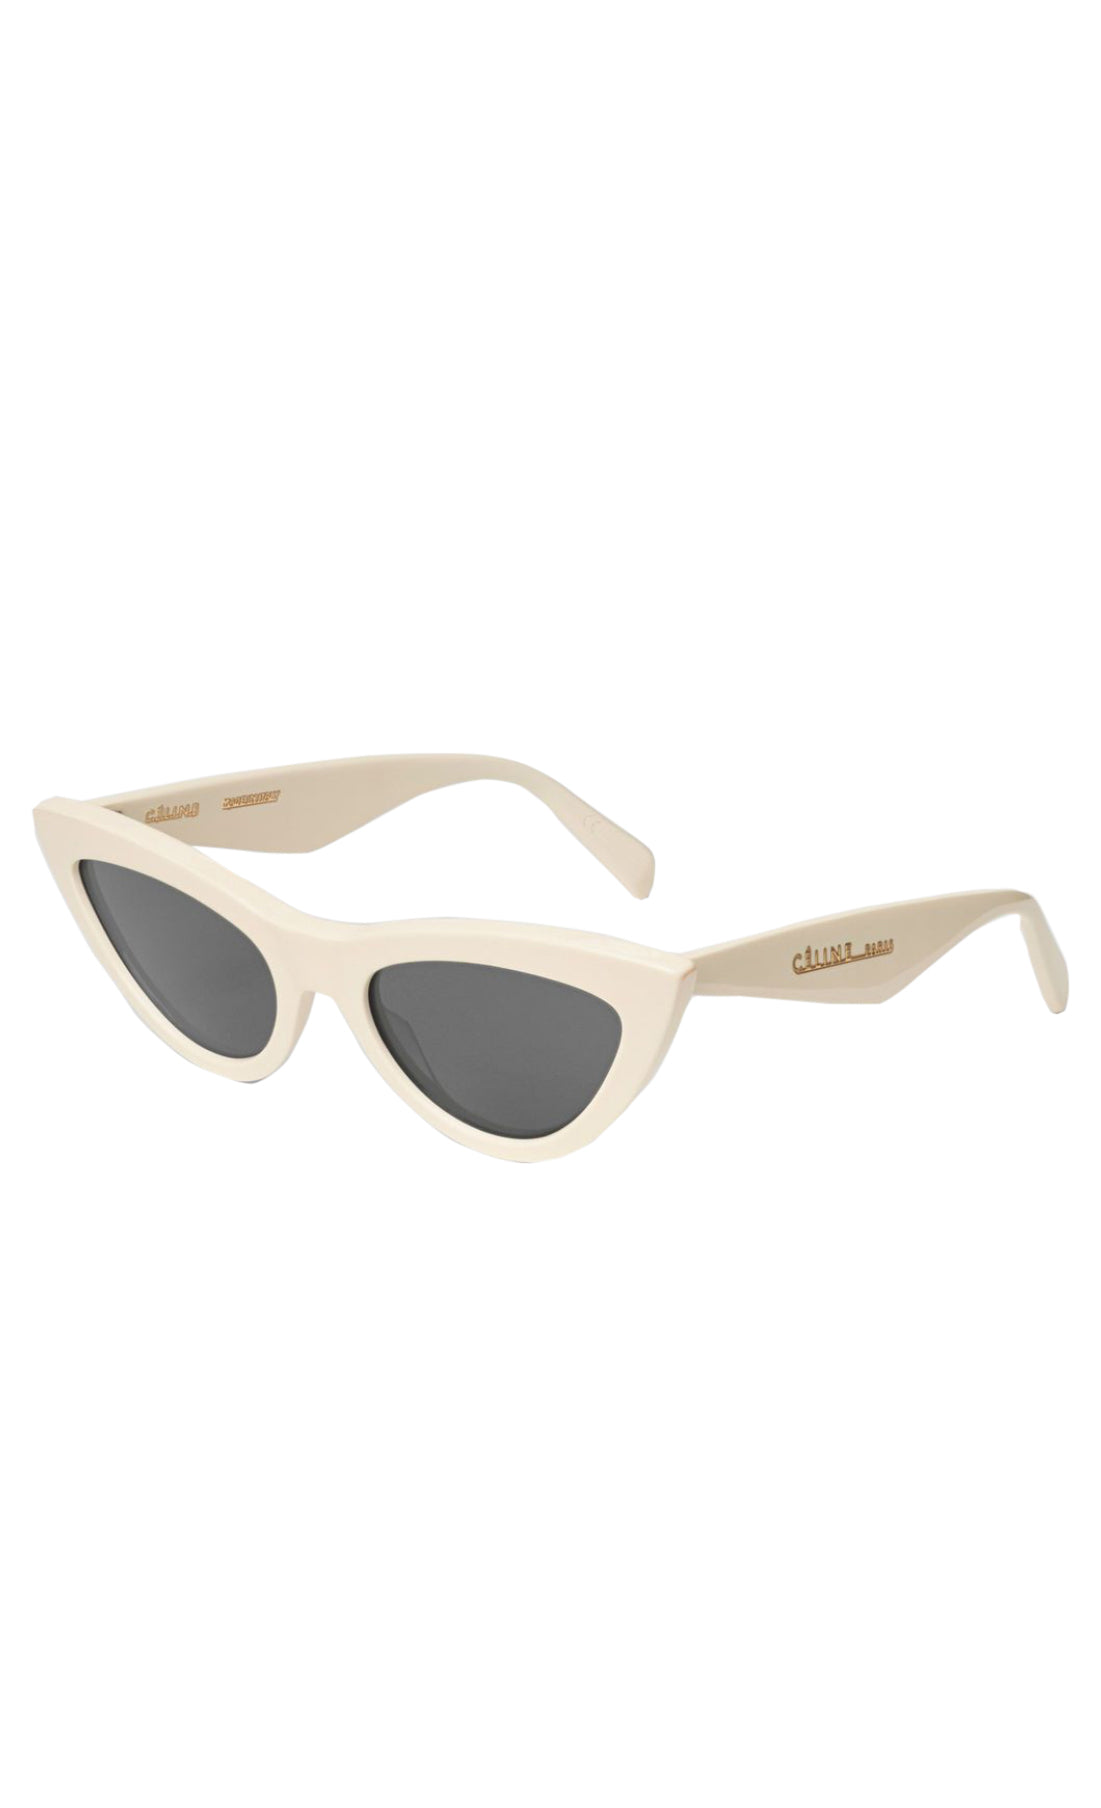 Céline Cat Eye Sunglasses in Cream and Black Lens